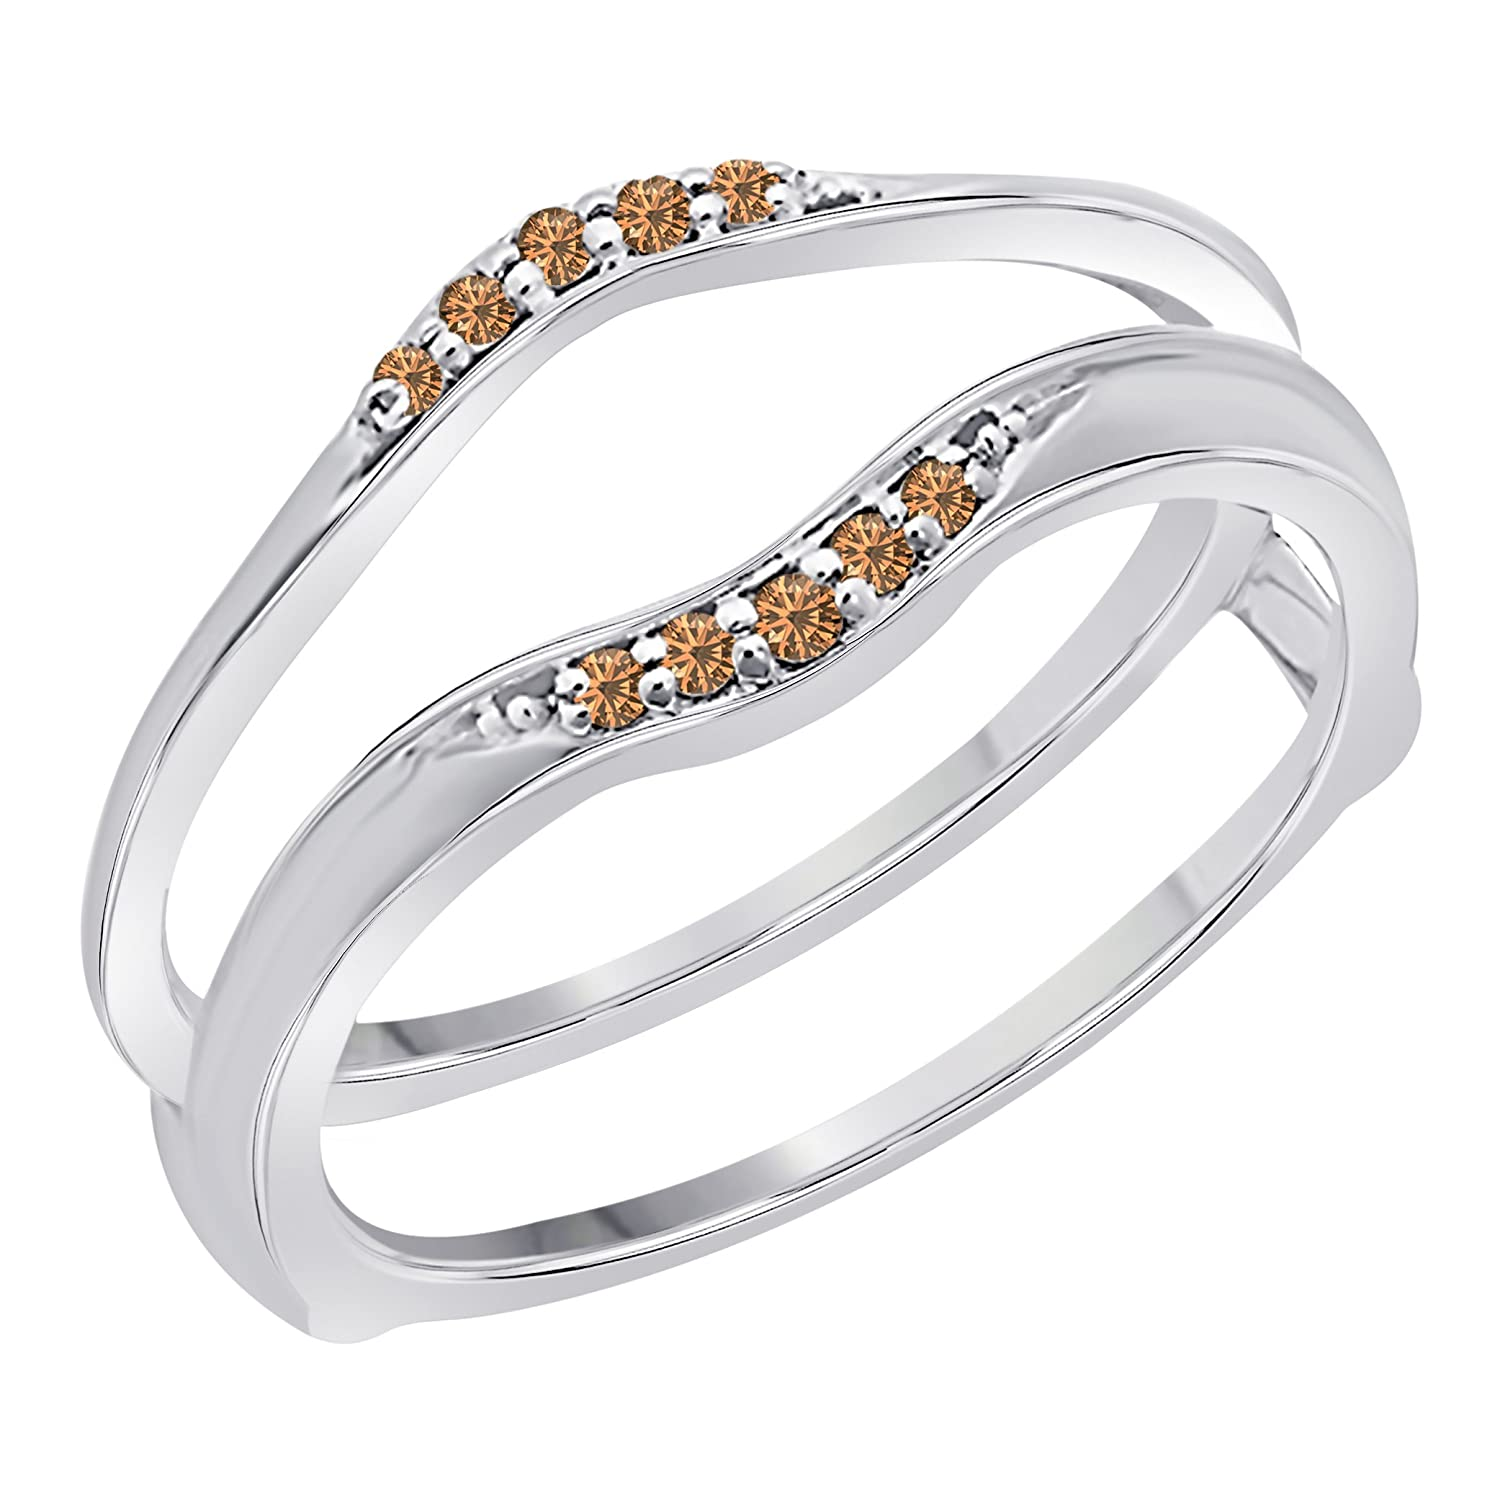 Amazon Sterling Silver Plated Delicate Bination Curved Style Vintage Wedding Ring Guard Enhancer Cz Smoky Quartz 16 Ct Tw Jewelry: Delicate Vintage Wedding Rings At Websimilar.org